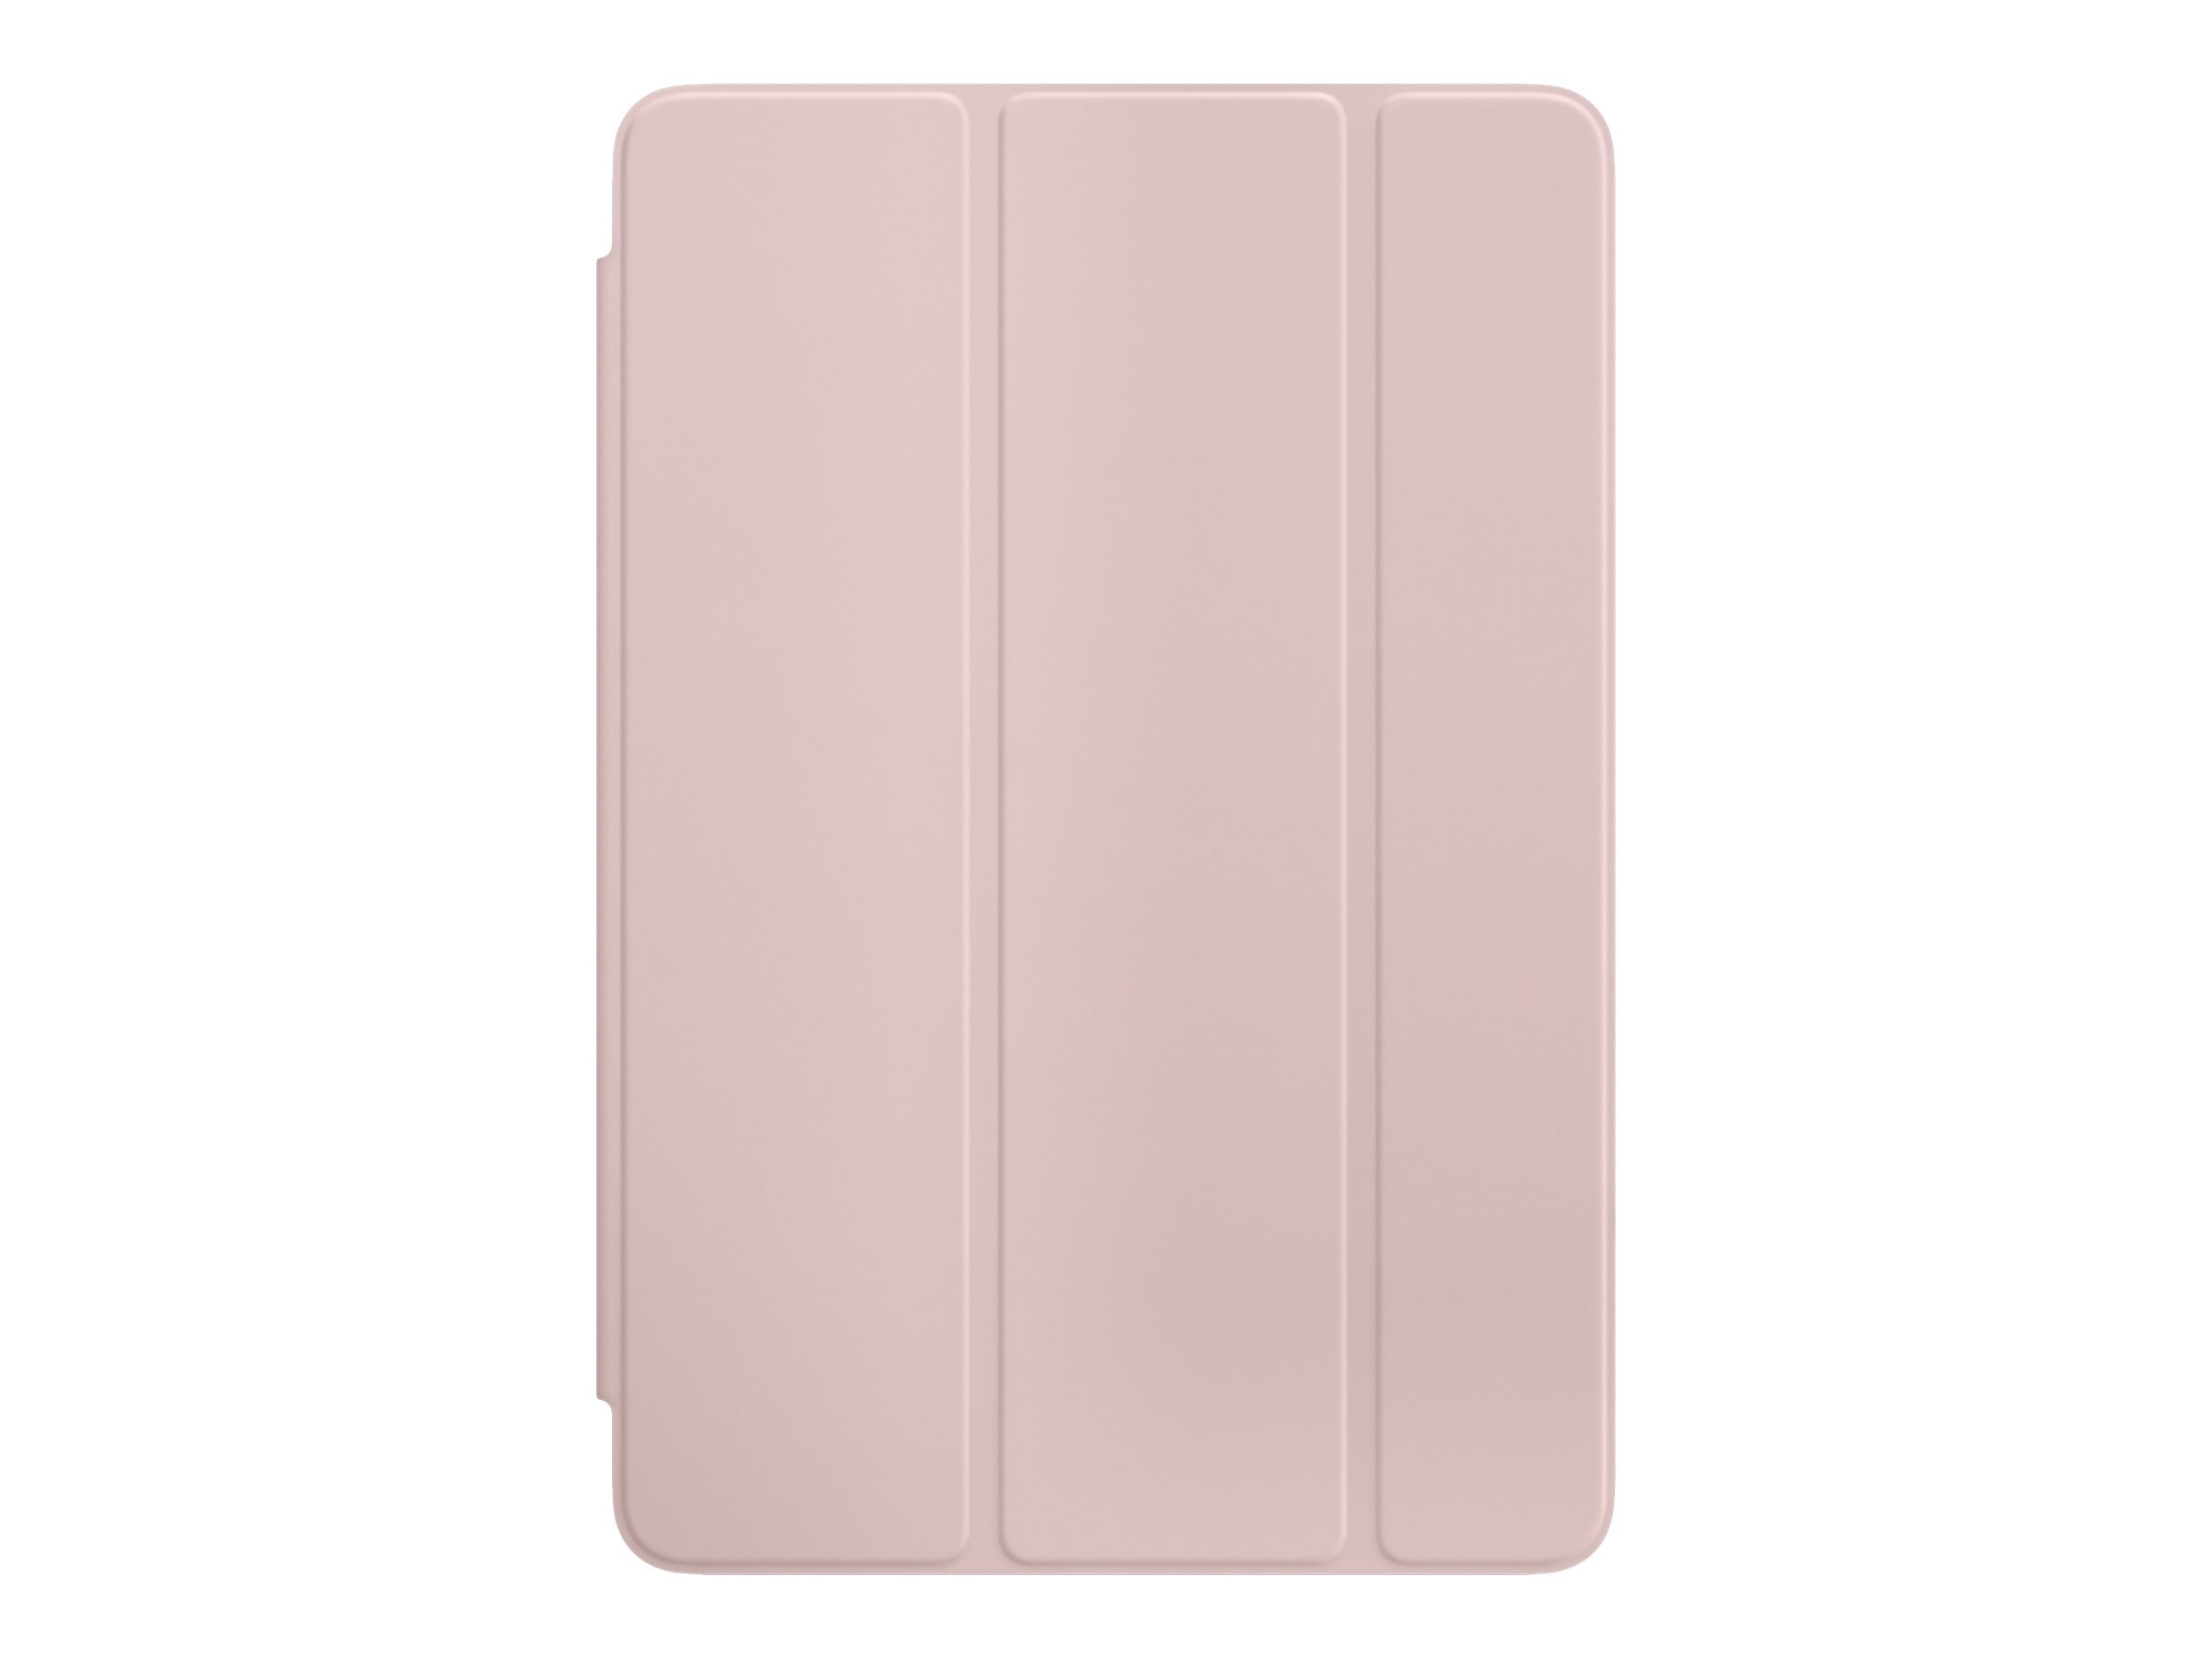 Apple Smart Cover for iPad mini 4, Pink Sand